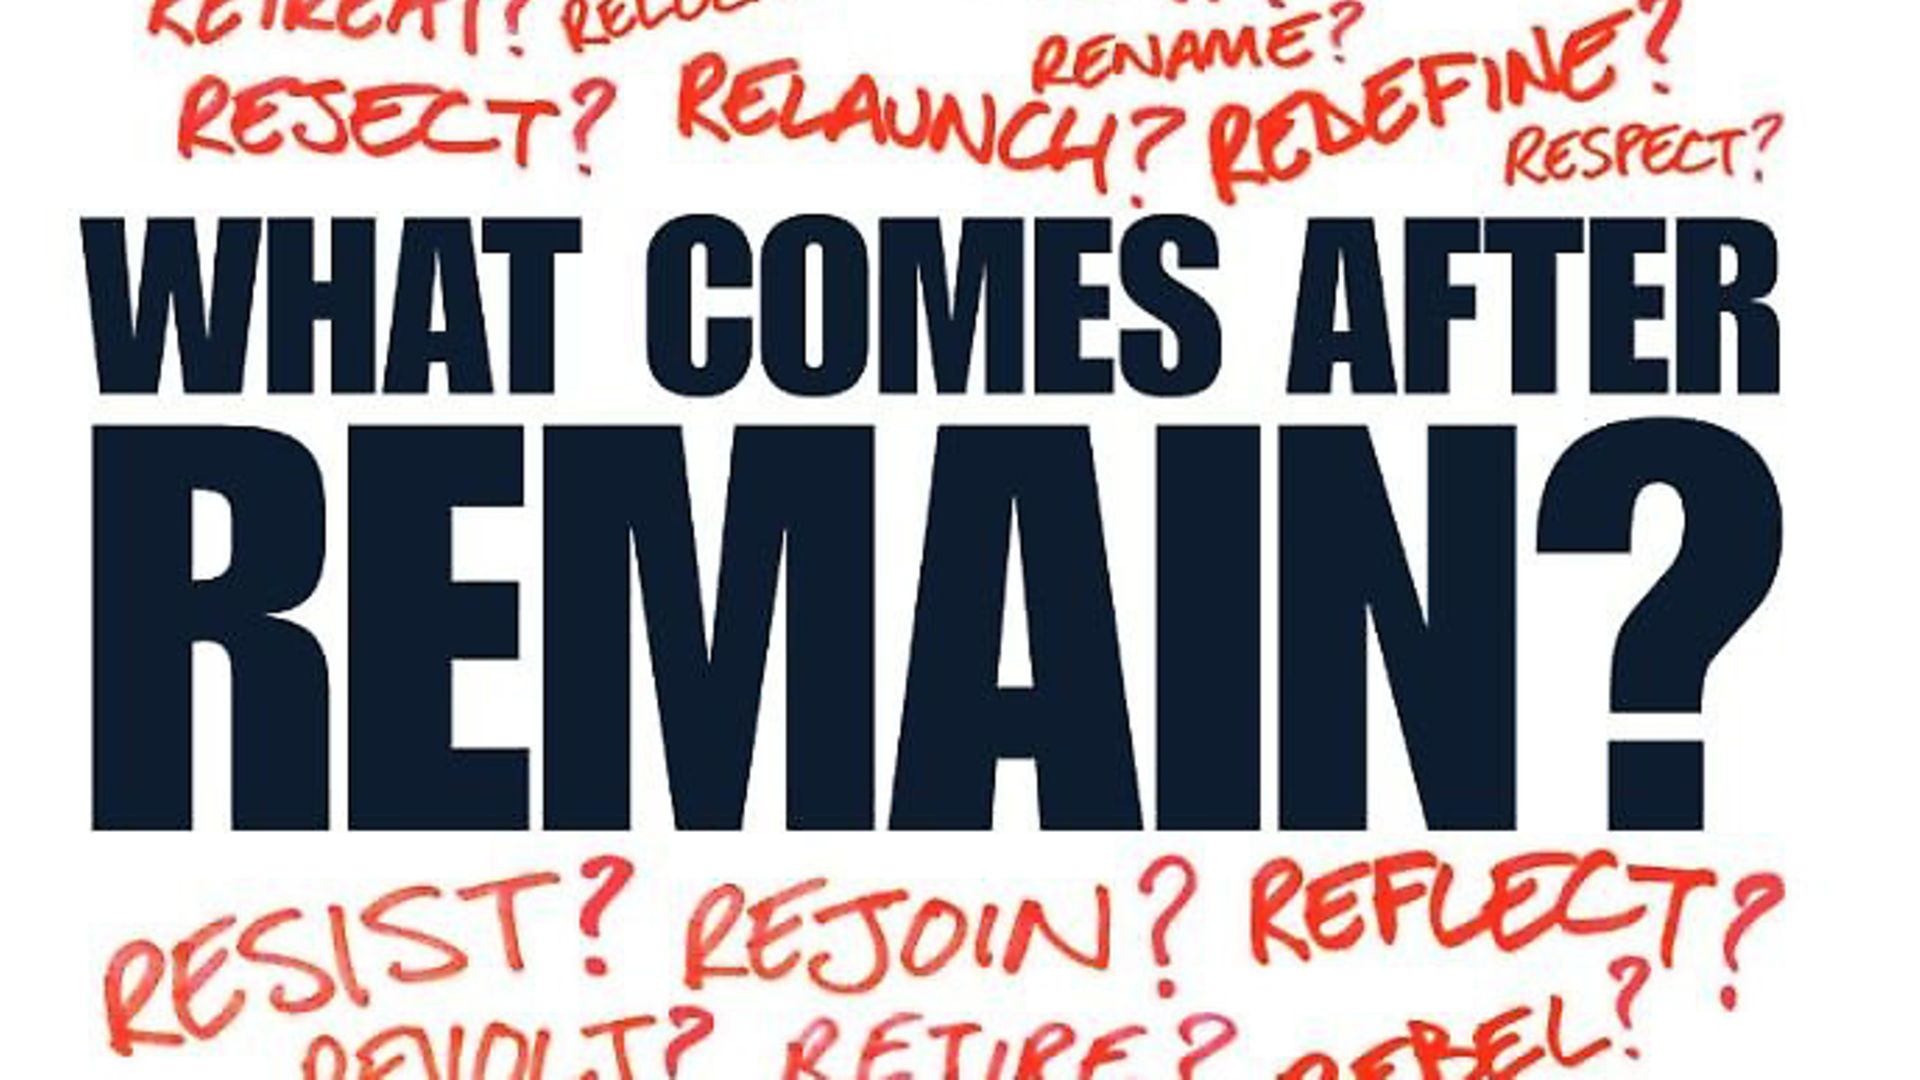 Issue 177 of The New European asked what next for the pro-European movement? - Credit: Archant